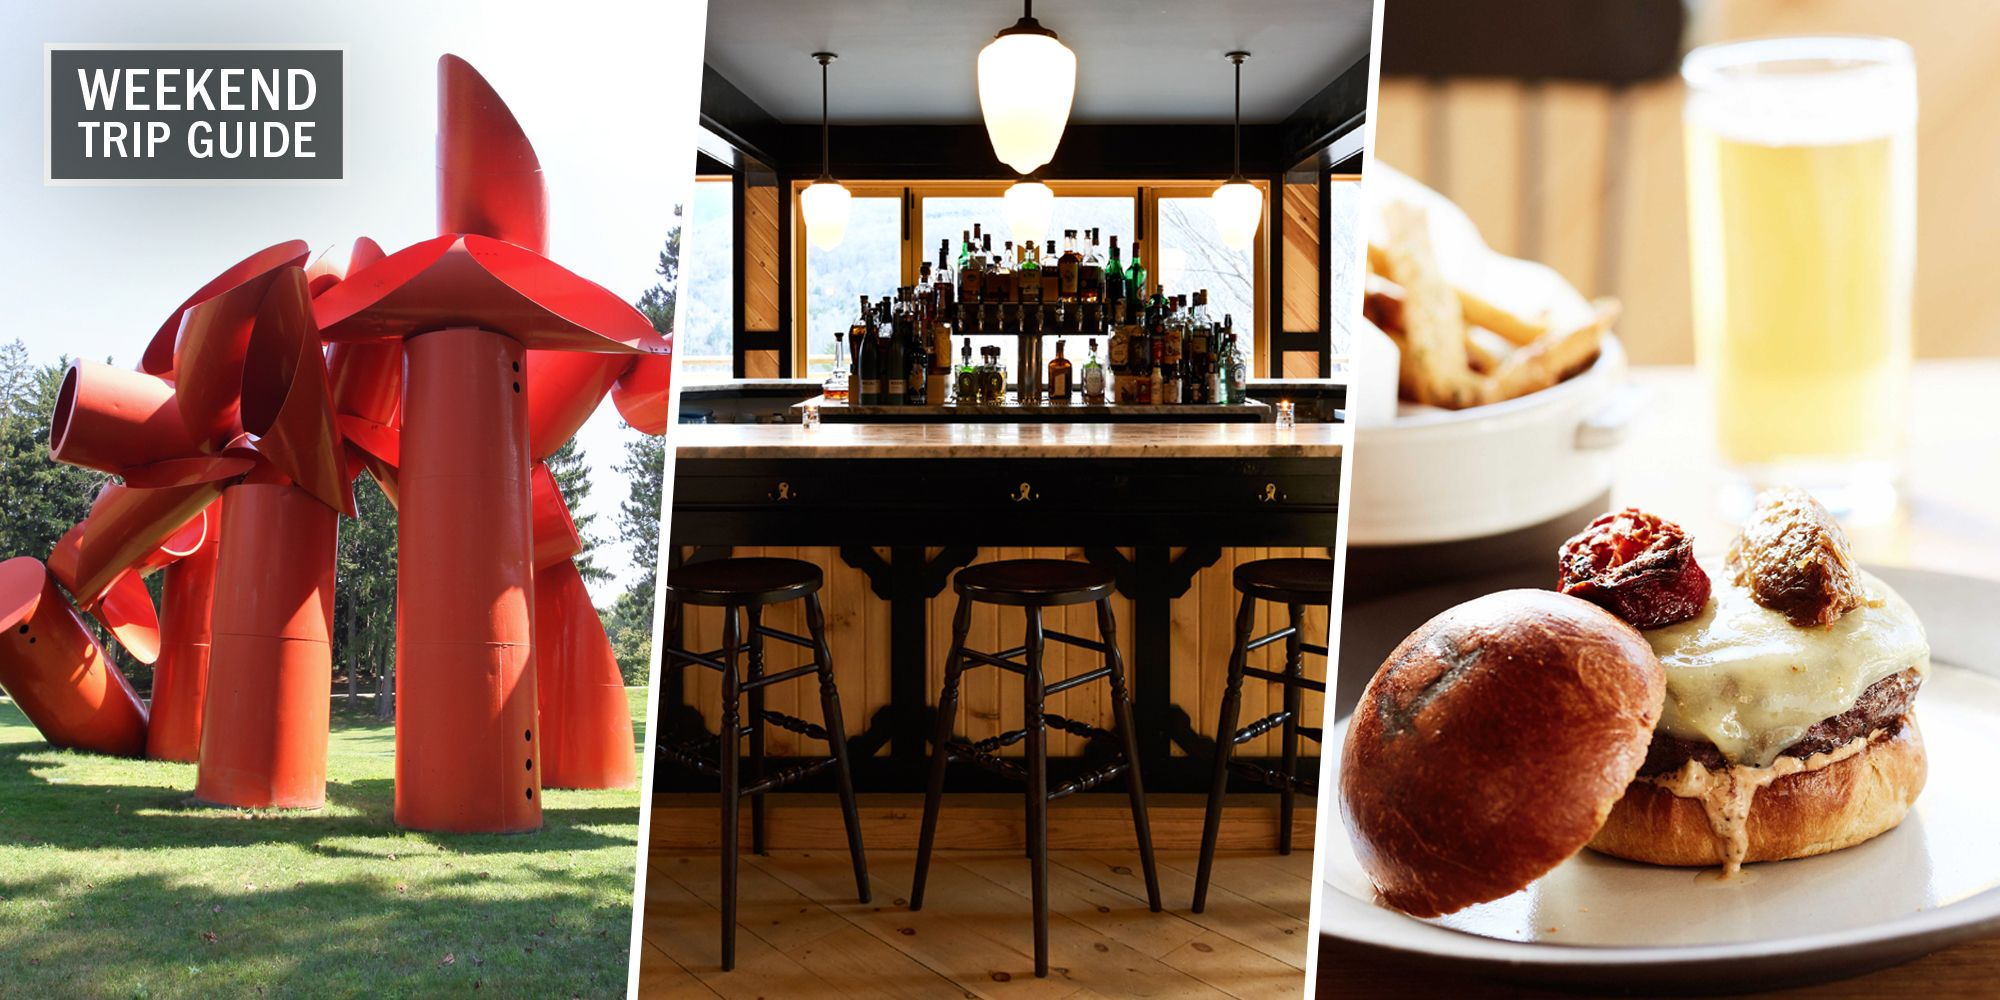 Weekend Trip Guide: Where to Stay, Eat, and Drink in the Hudson Valley